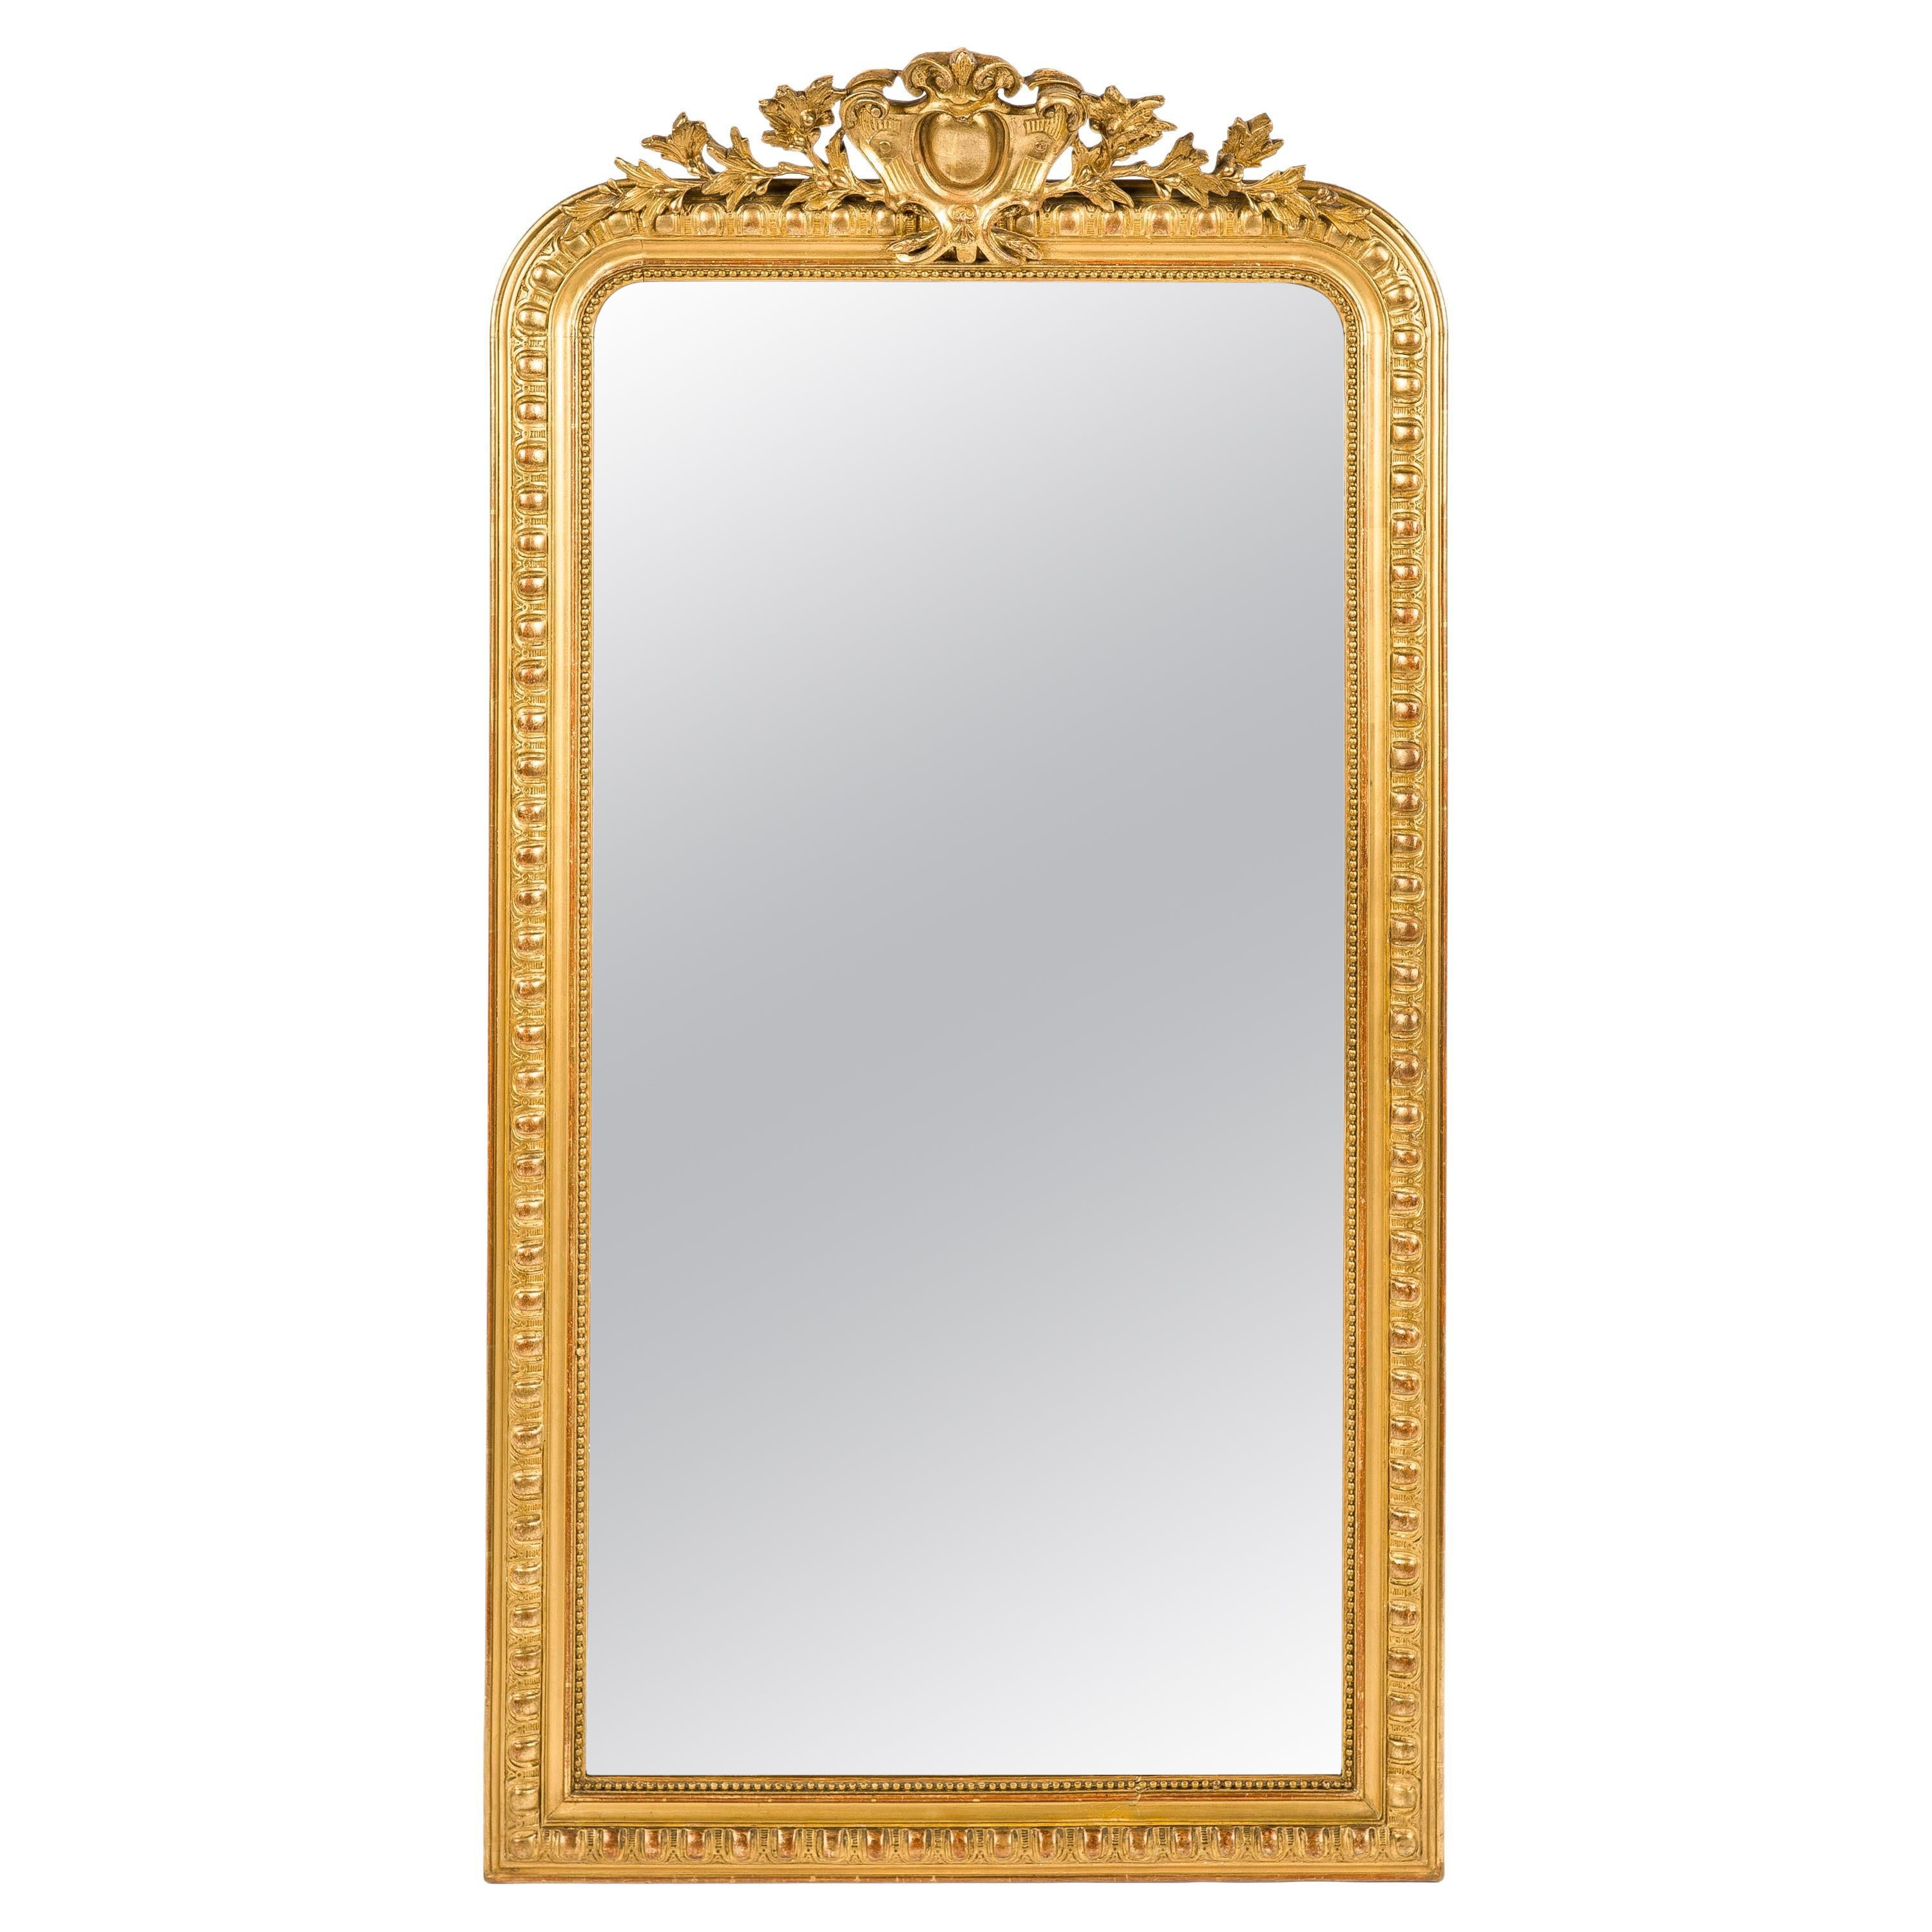 Antique 19th-Century Gadrooned French Gold Leaf Gilt Louis Philippe Mirror